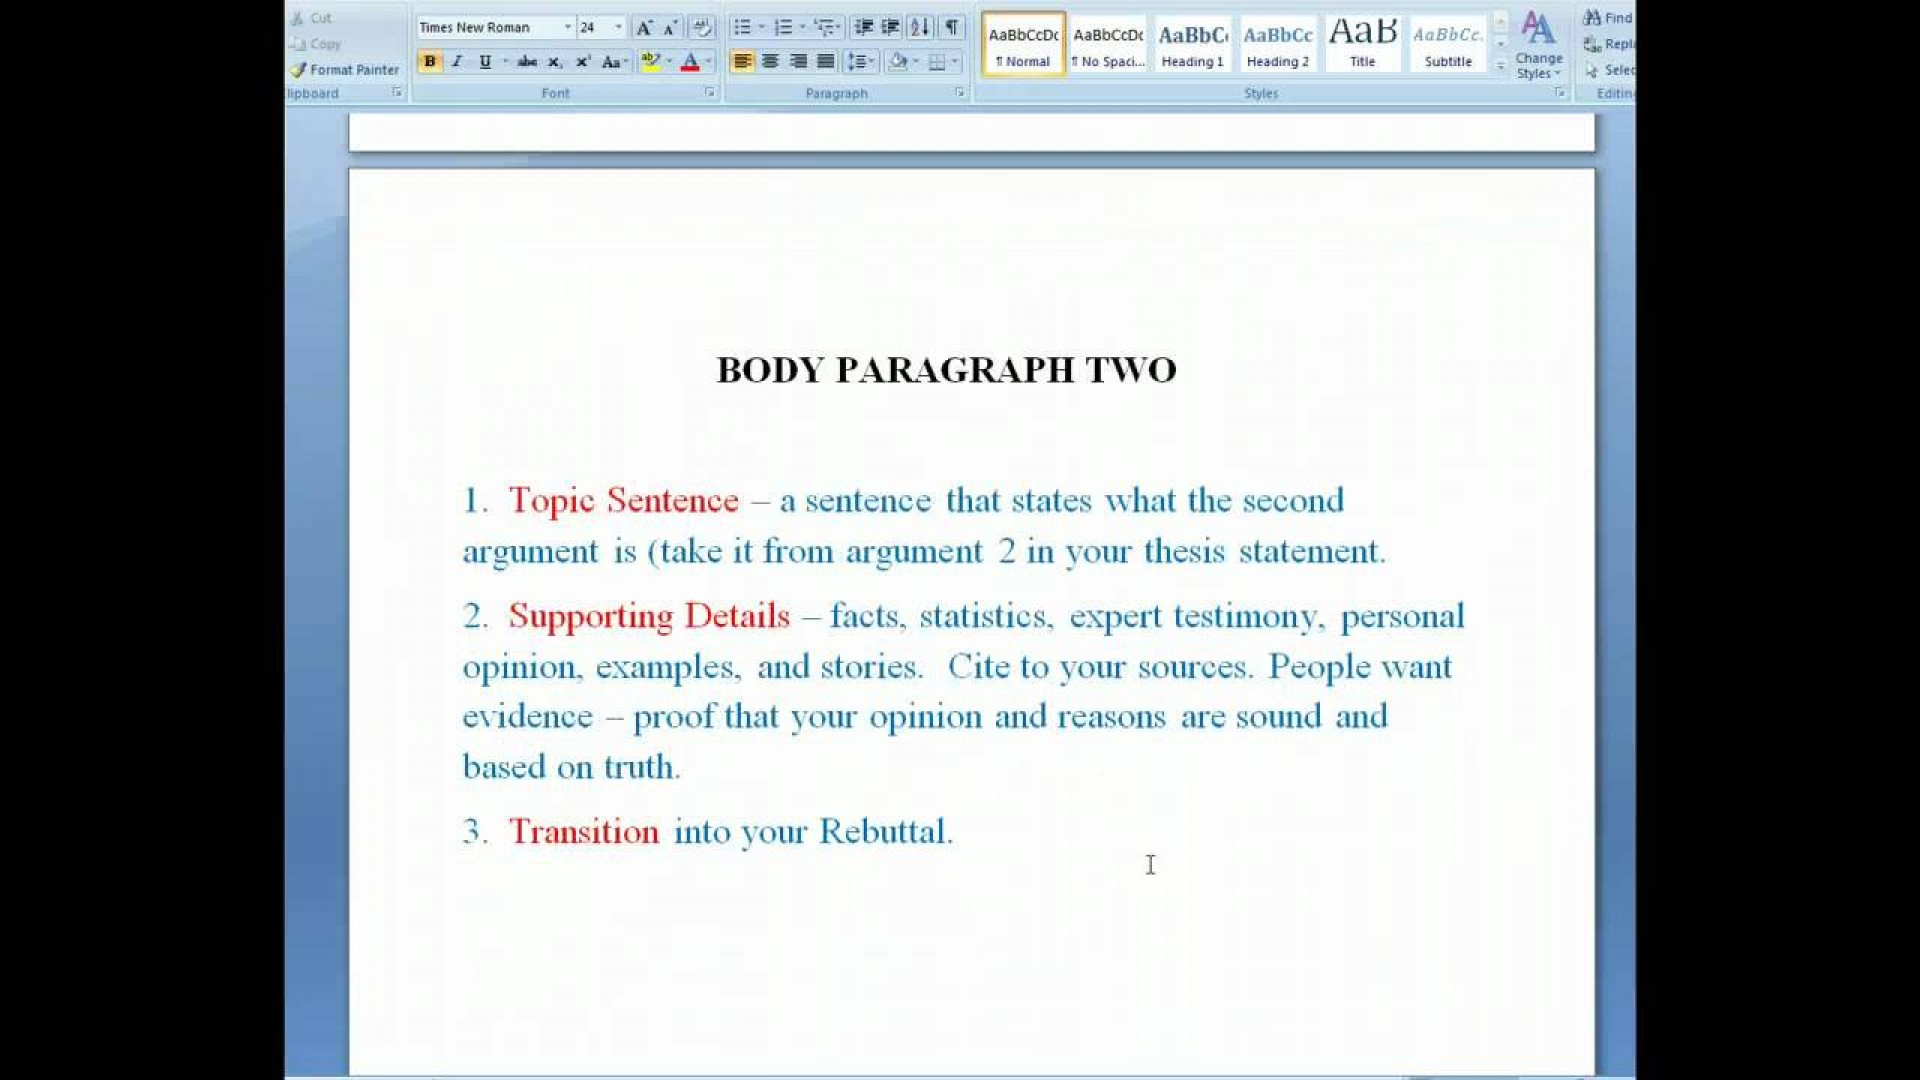 010 Research Paper Argumentative Awful College Topics Sample Outline Mla 1920